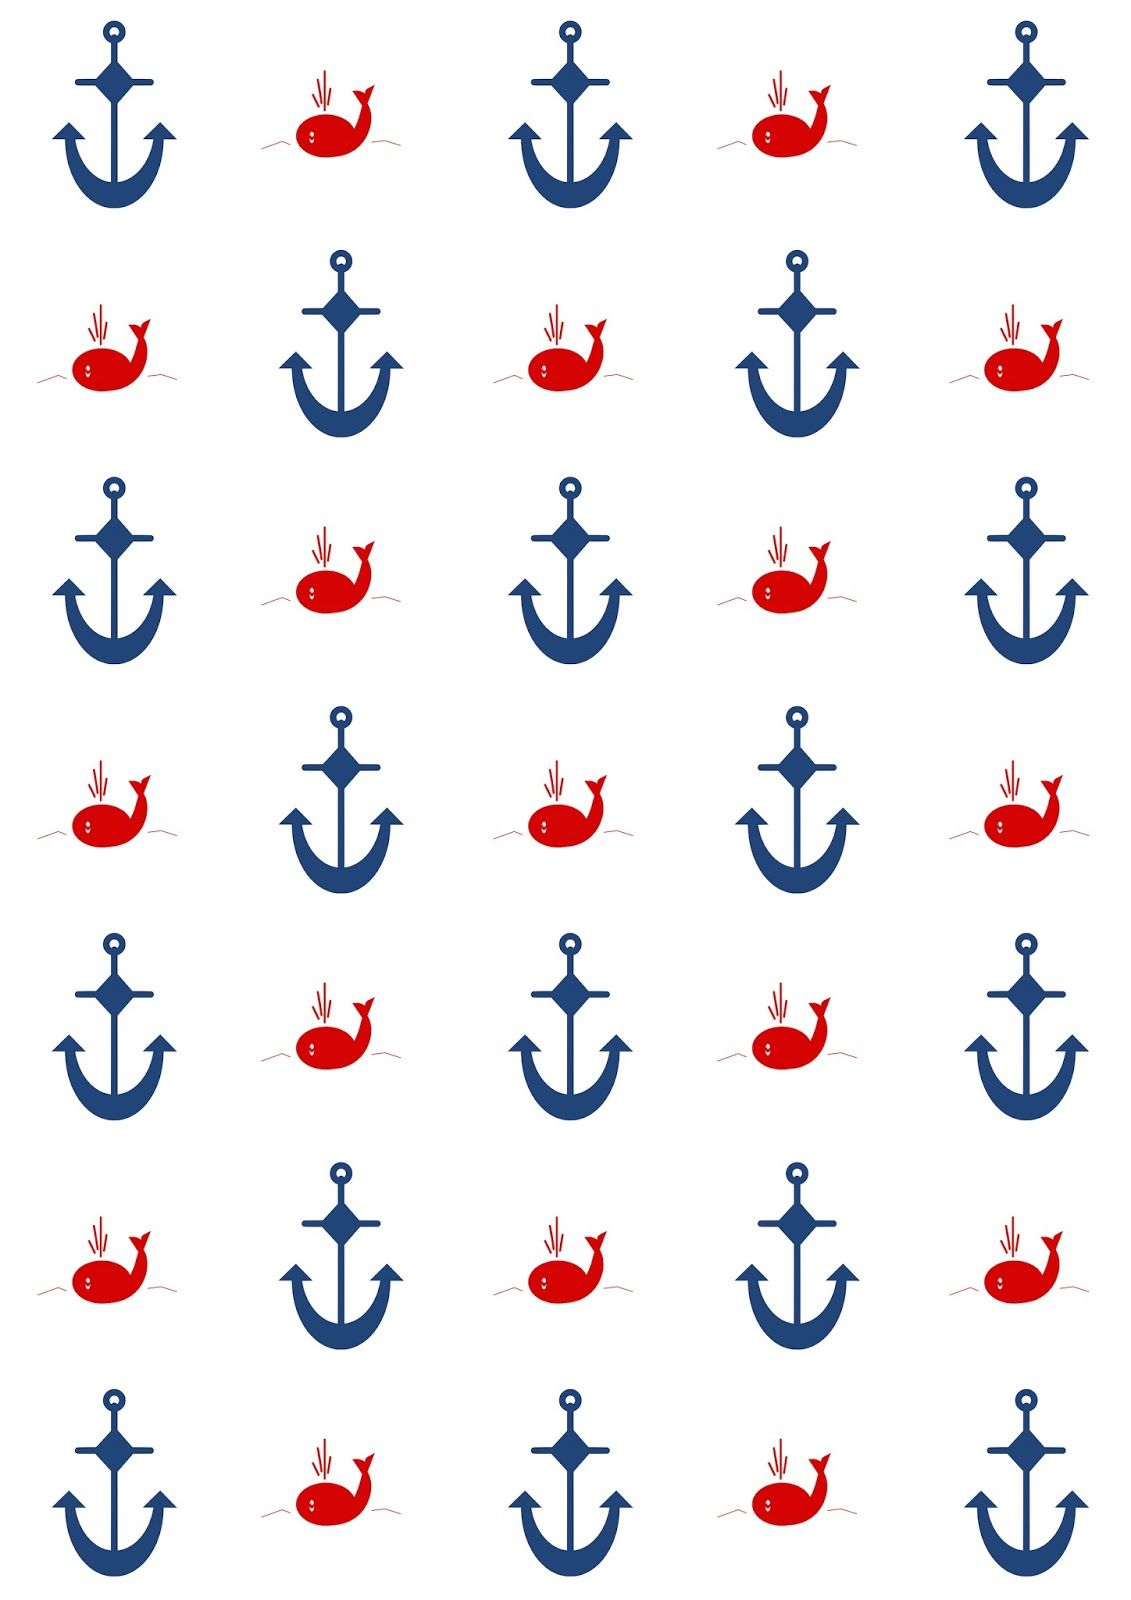 Yw scrapbook paper - Free Digital Nautical Scrapbooking Papers Ausdruckbares Geschenkpapier Freebie Meinlilapark Diy Printables And